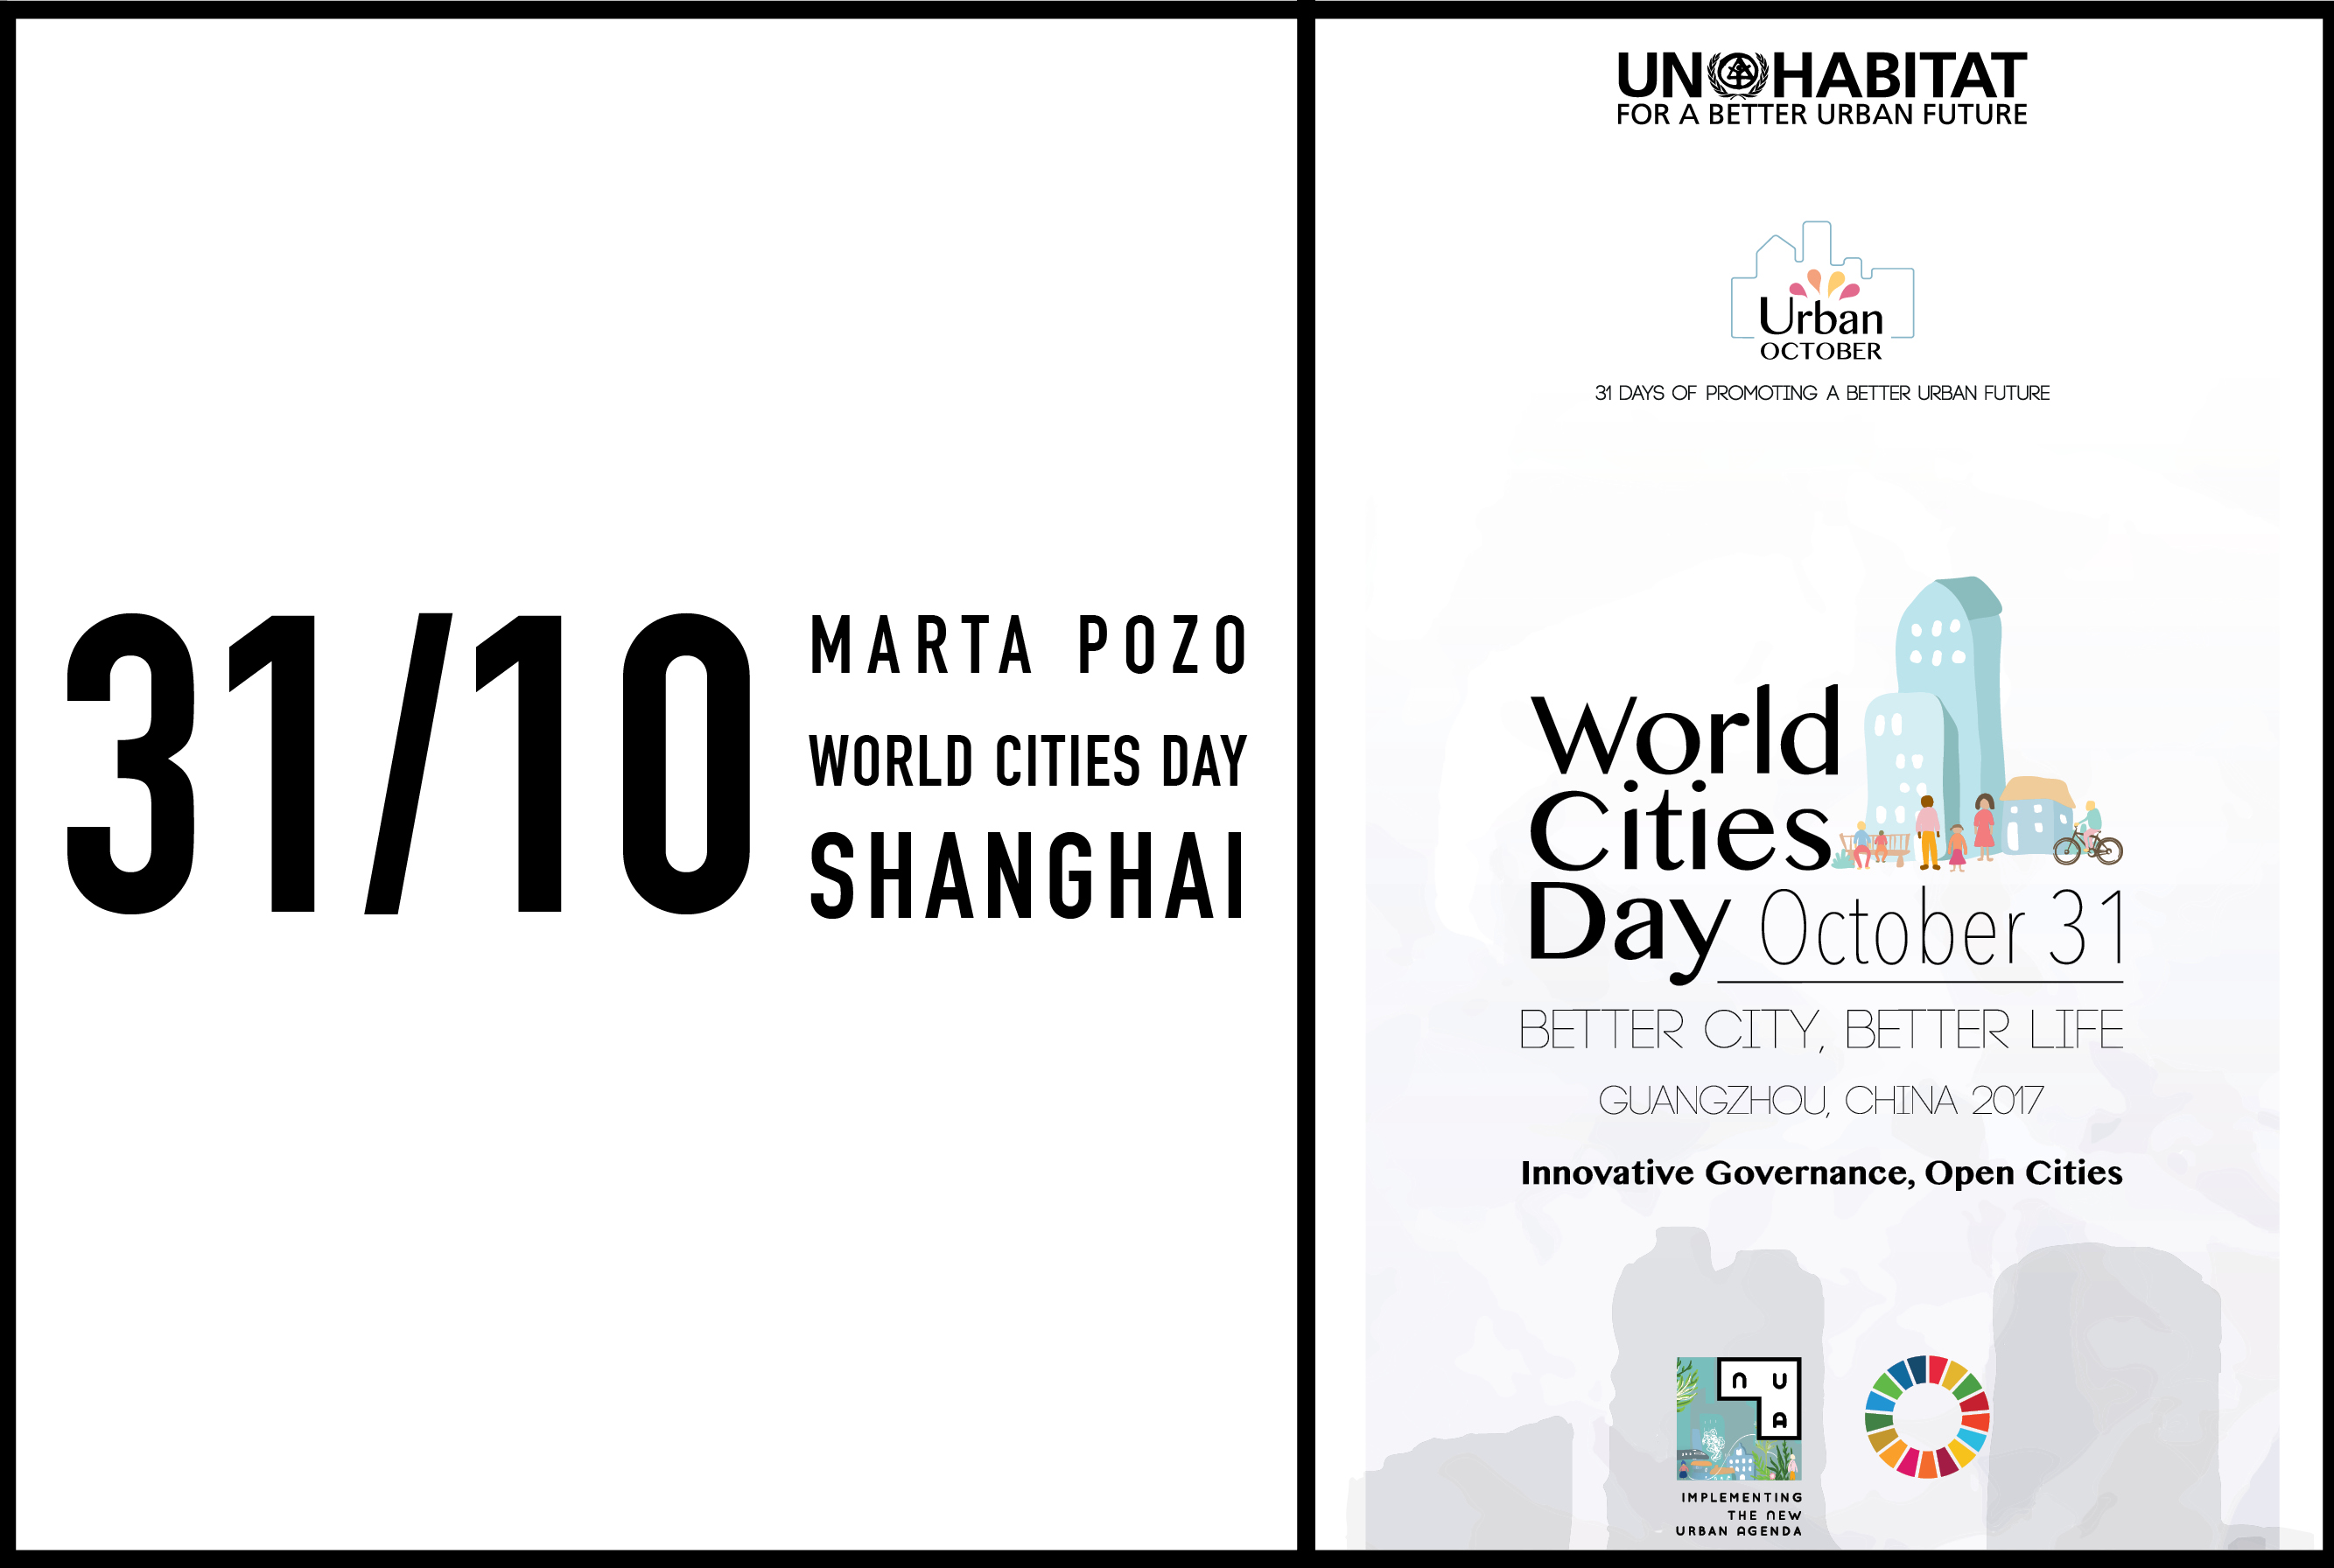 Marta Pozo, MVRDV Asia Director, to speak at World Cities Day in Shanghai, 31 October 2017